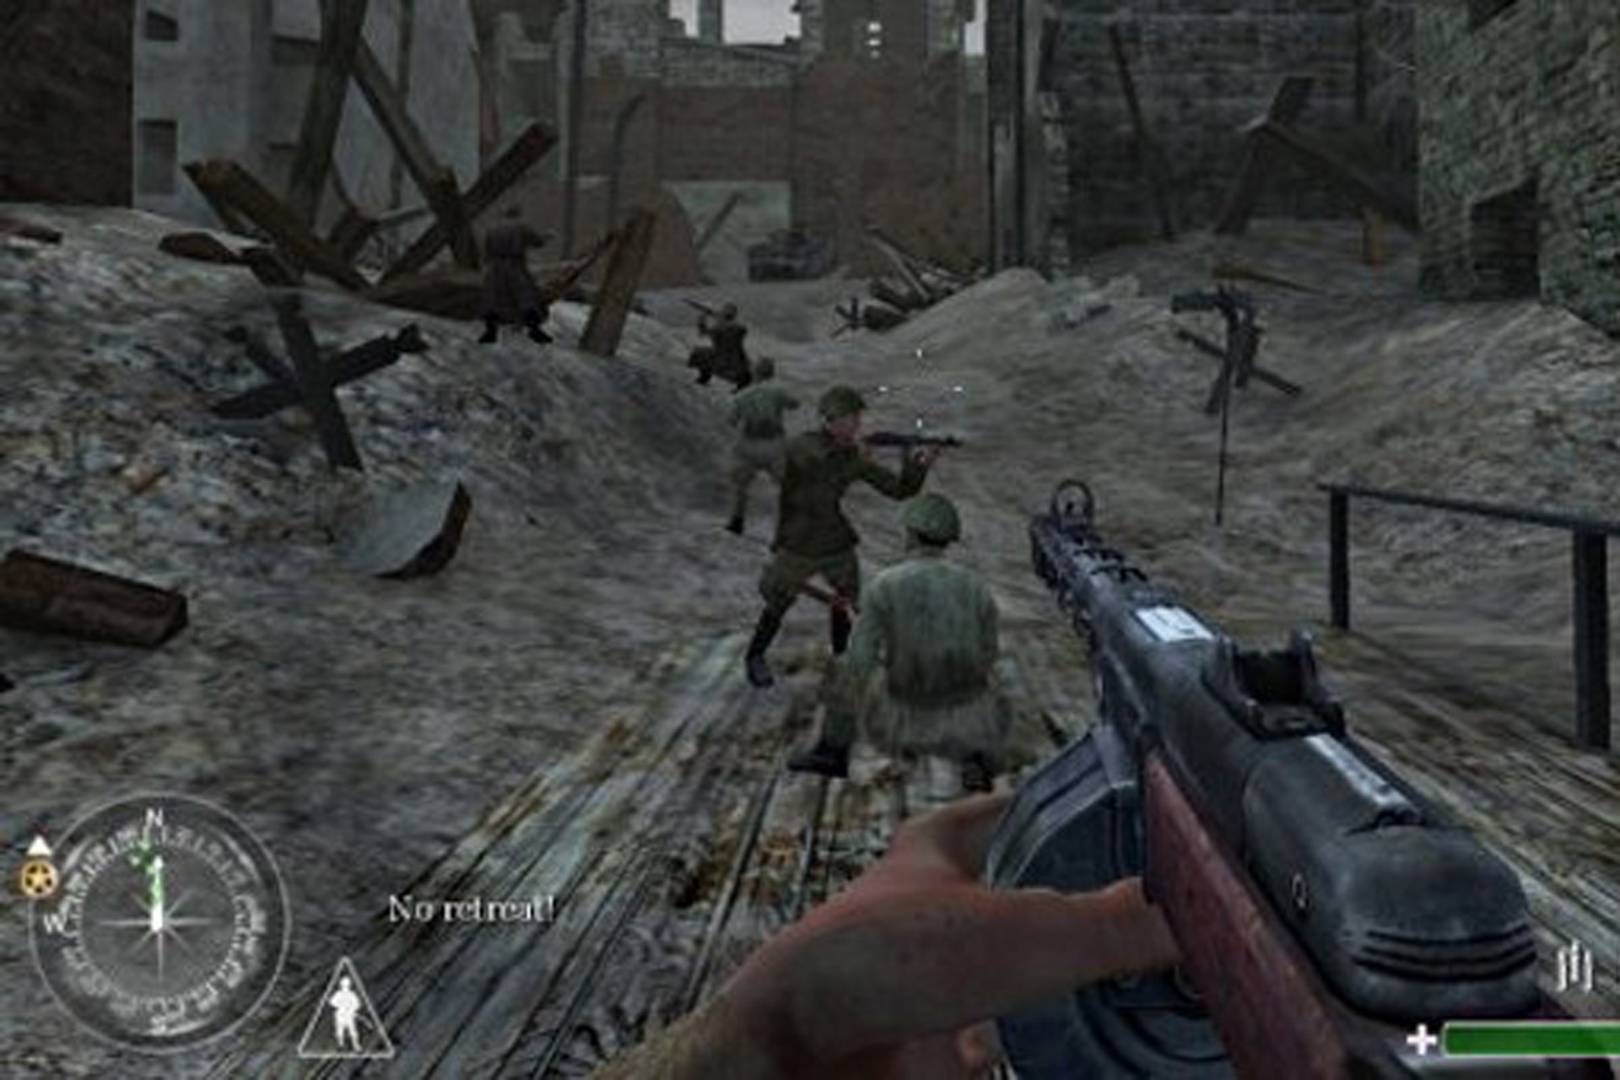 call of duty 2 multiplayer free download full version for pc